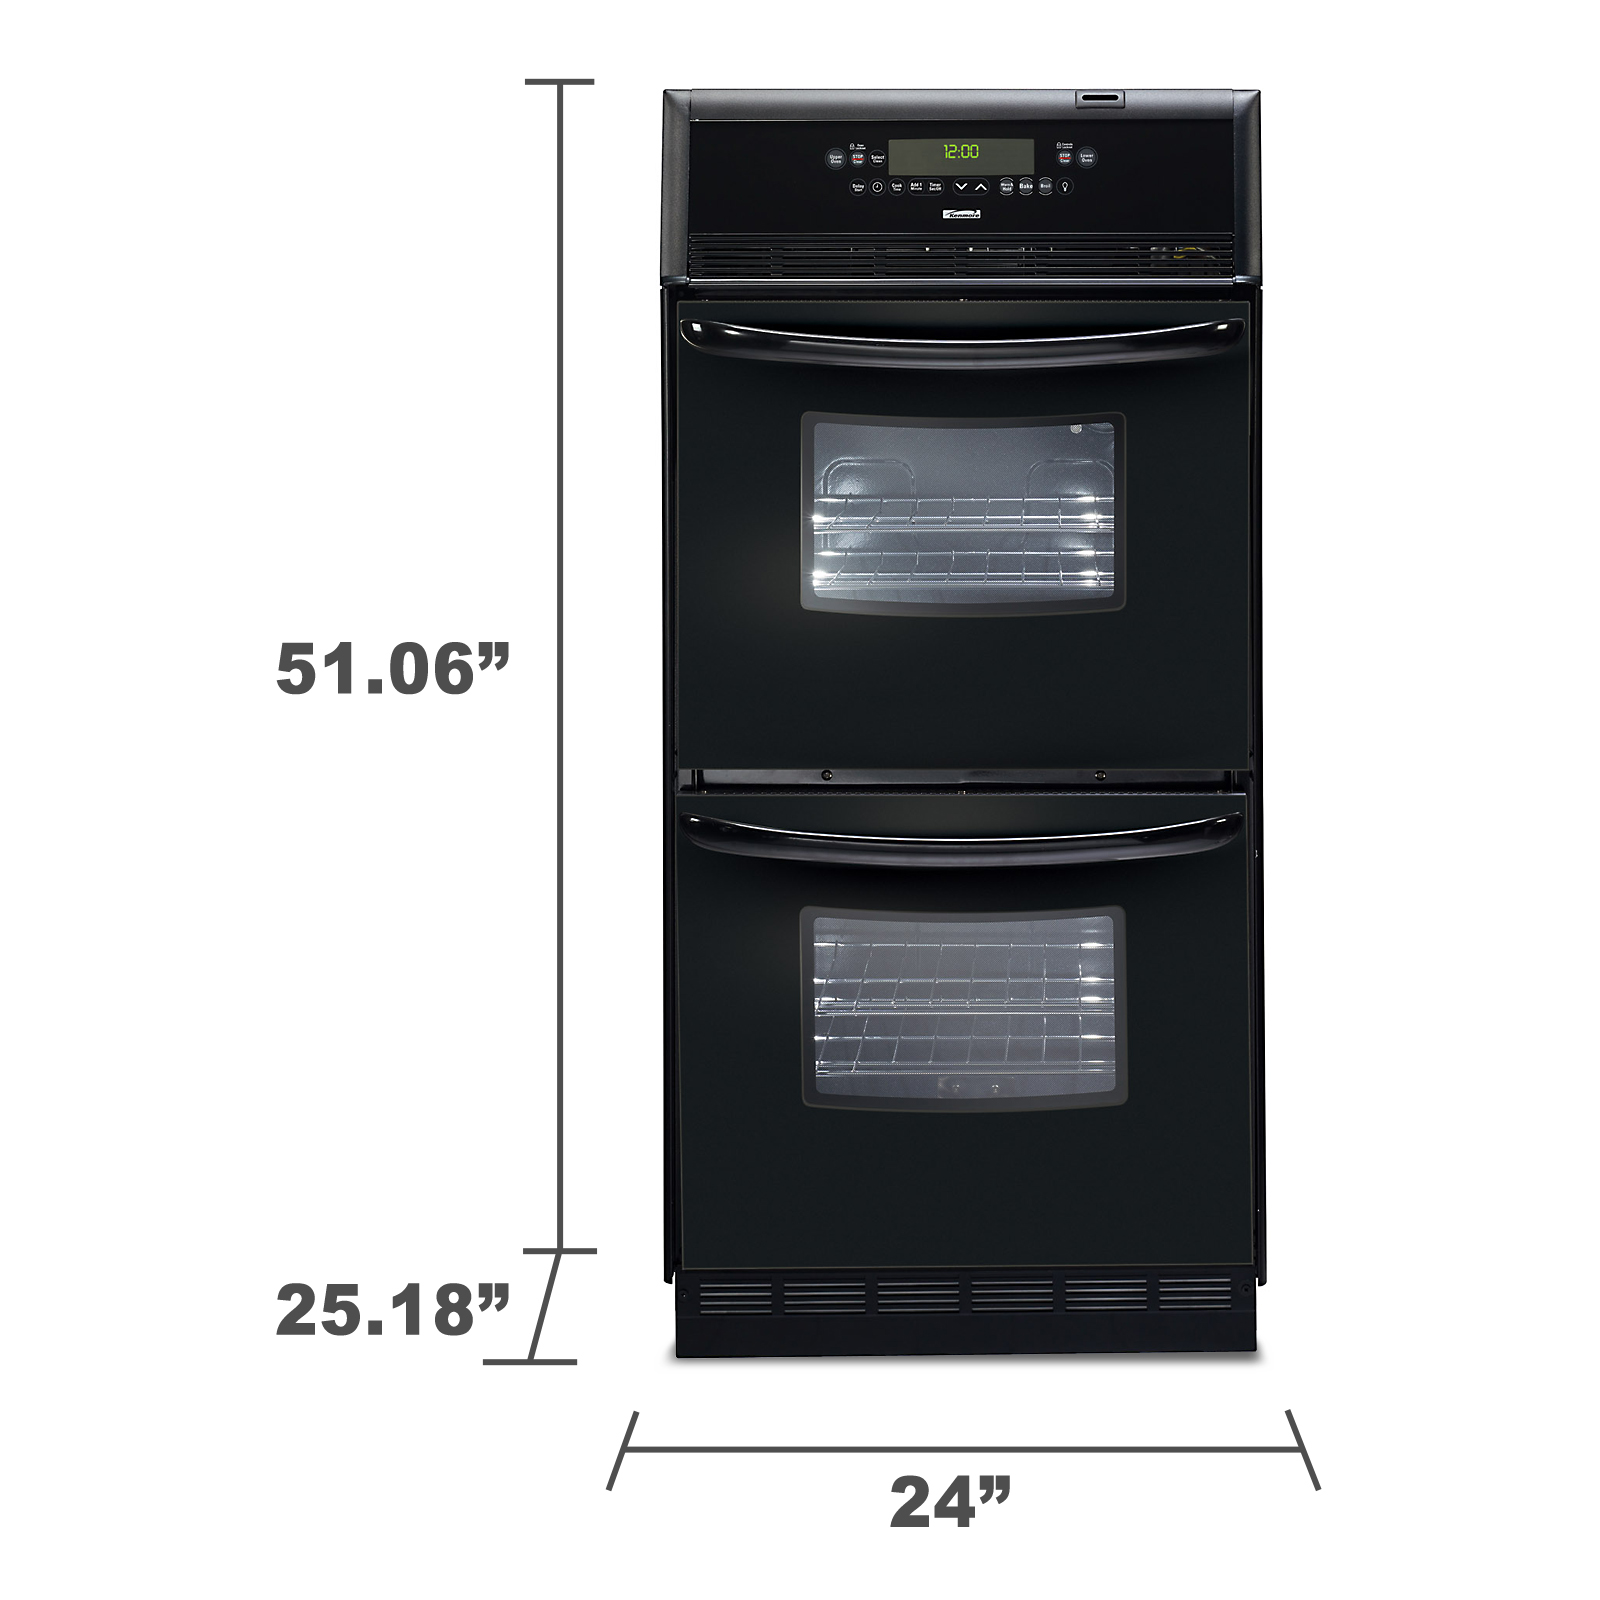 "Kenmore 24"" Manual Clean Double Wall Oven"